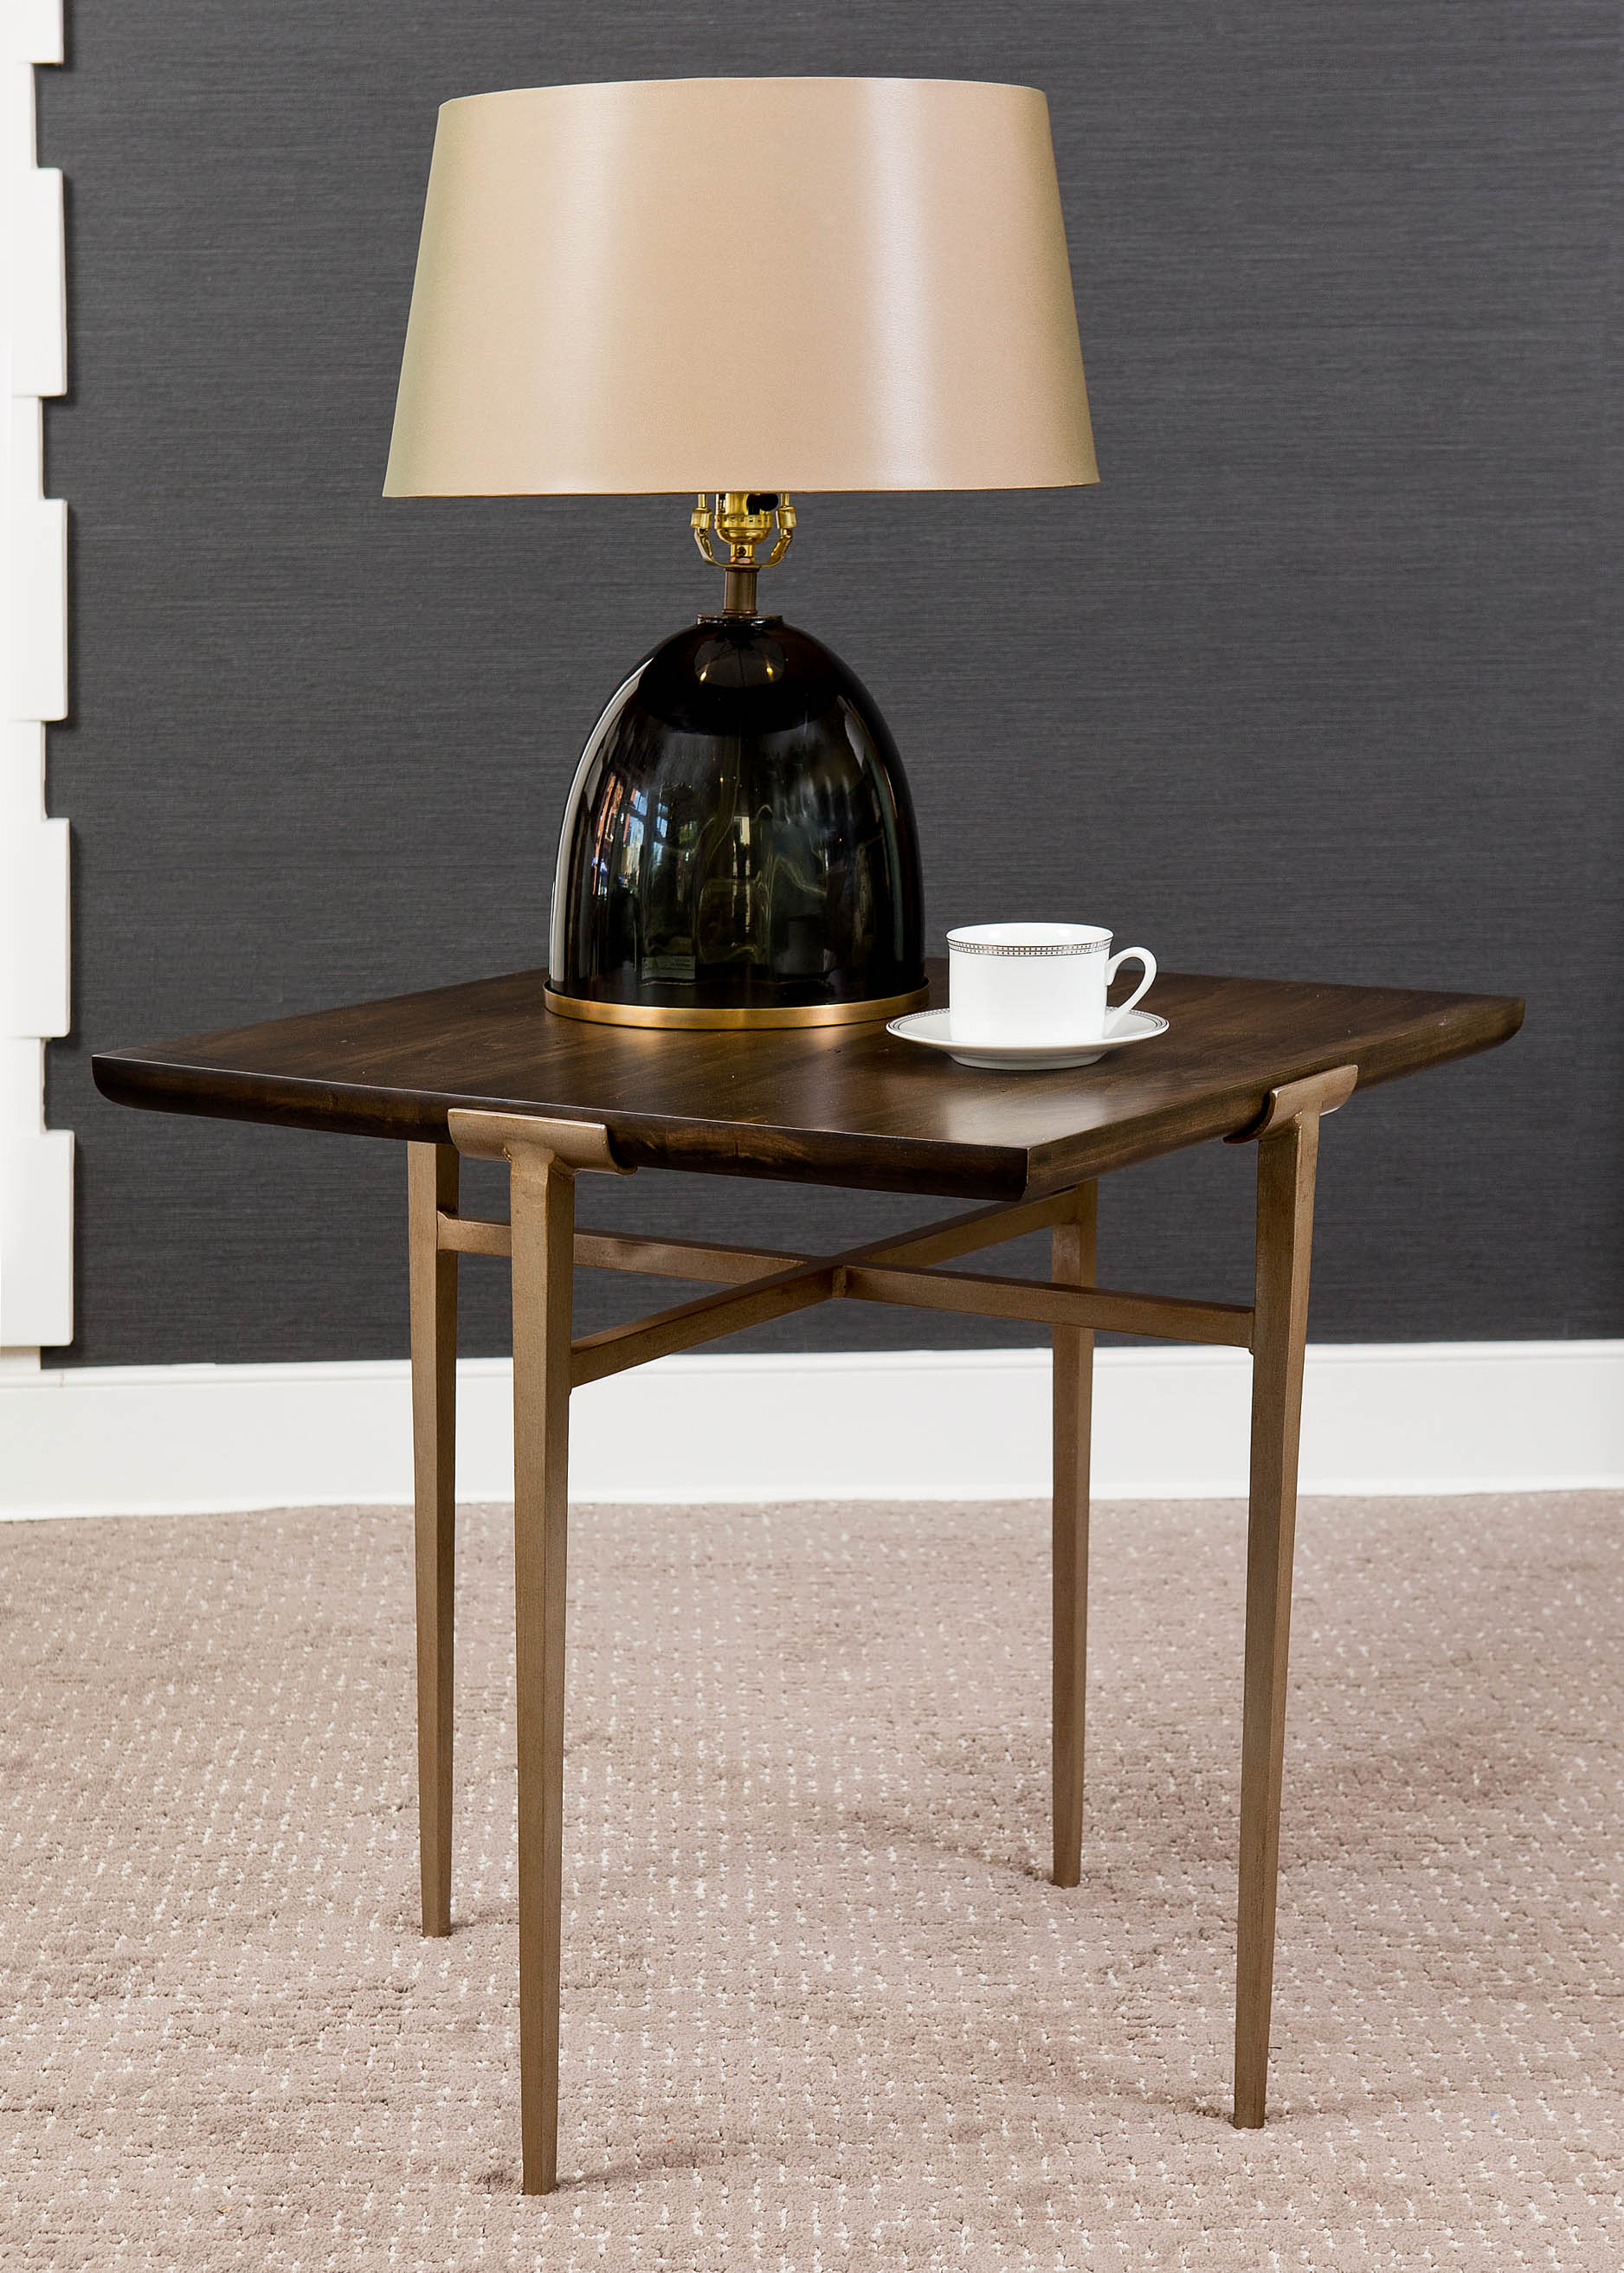 """""""It is not enough for a side table to be only functional. The silhouette and materials should add a spark of interest to your home. """" - Paul Miller, Lookbook 2019"""